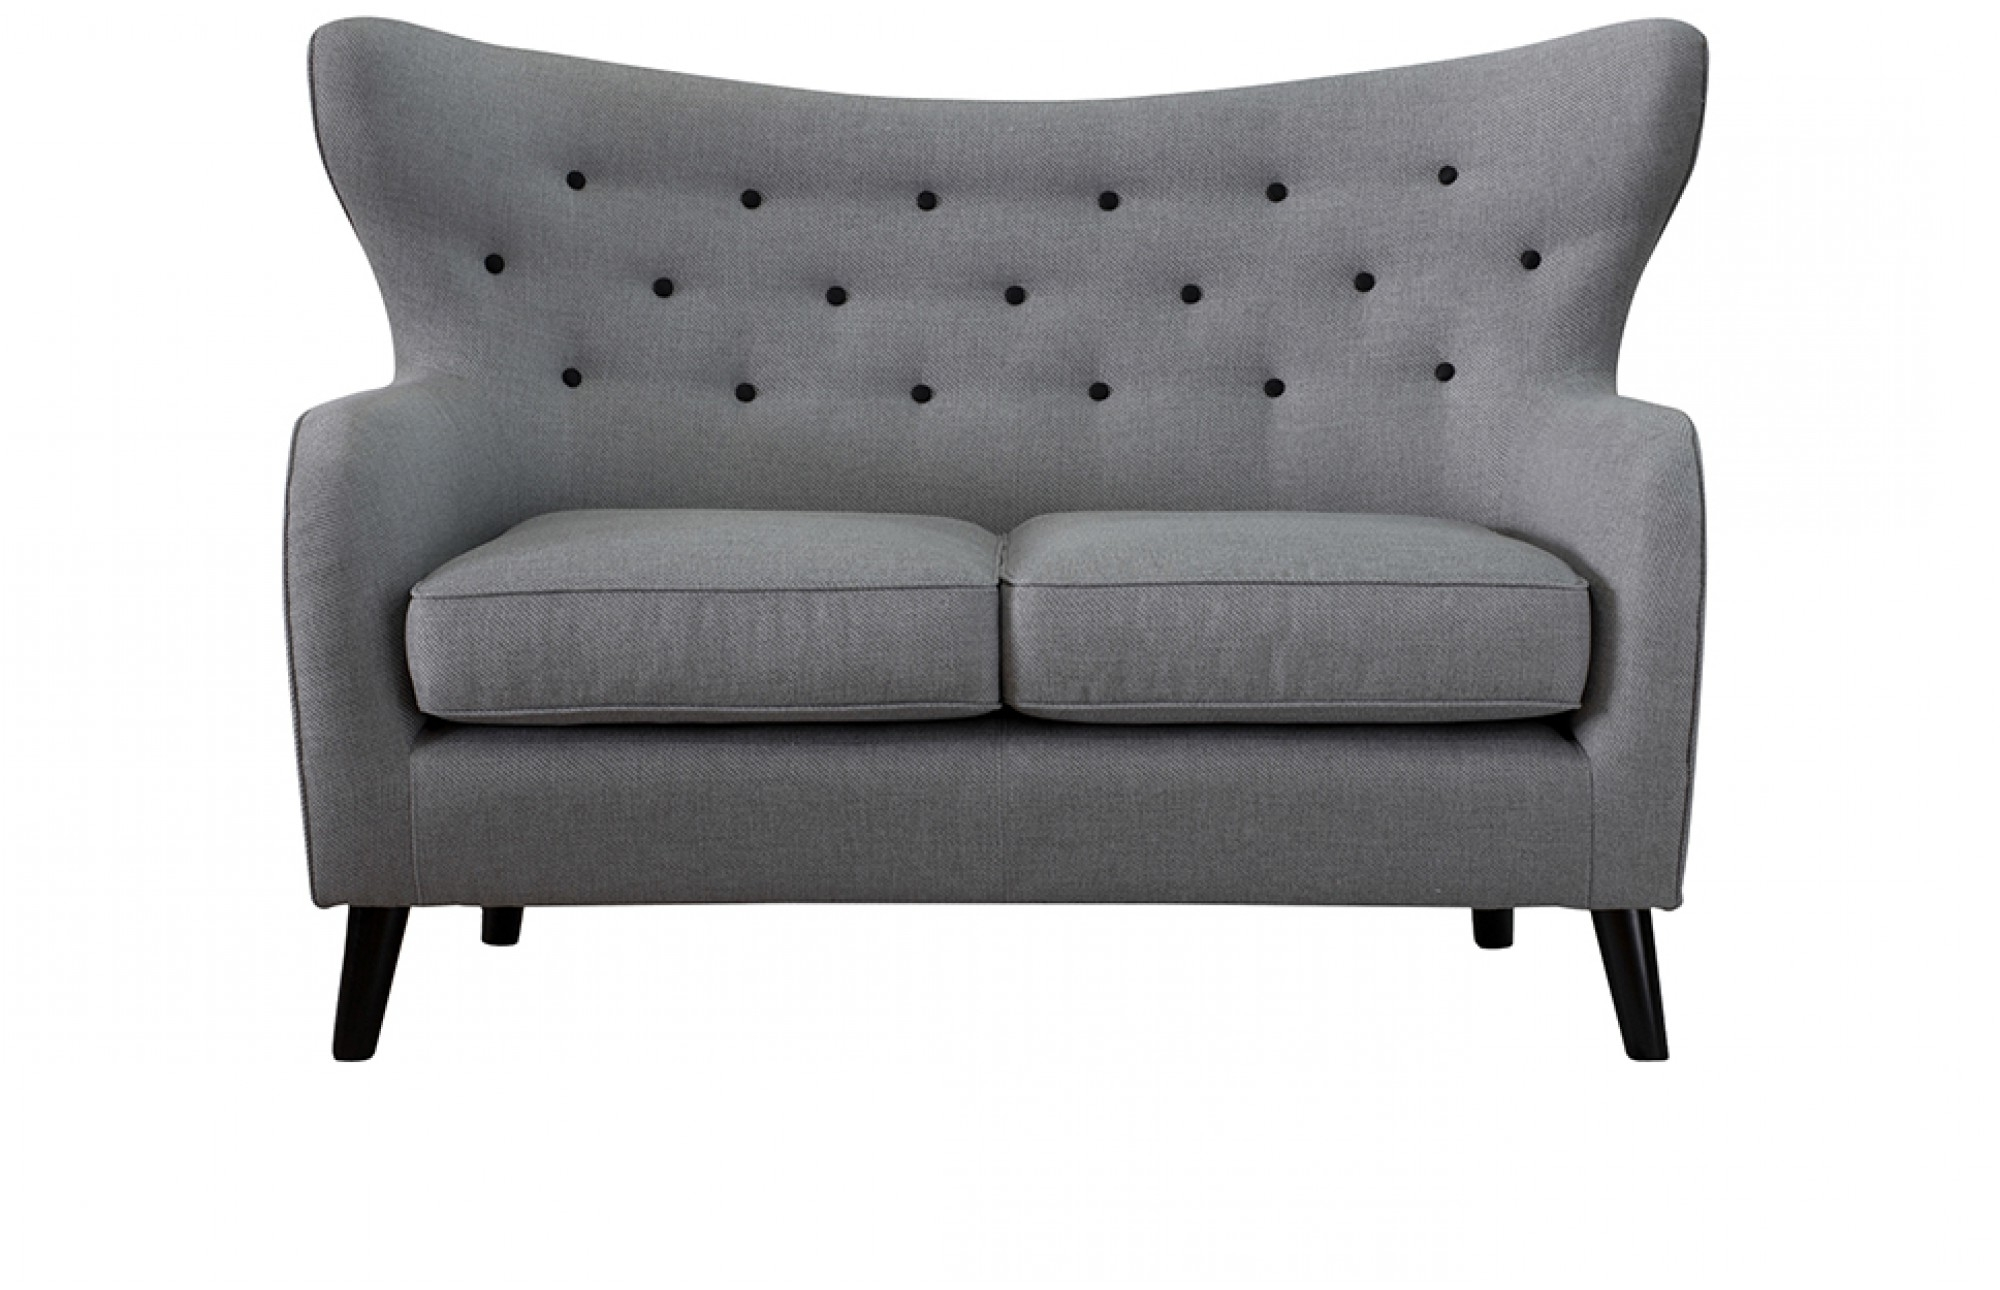 Two Seater Sofas Regarding Current Luxury Two Seater Couch 51 On Sofas And Couches Ideas With Two (View 16 of 20)